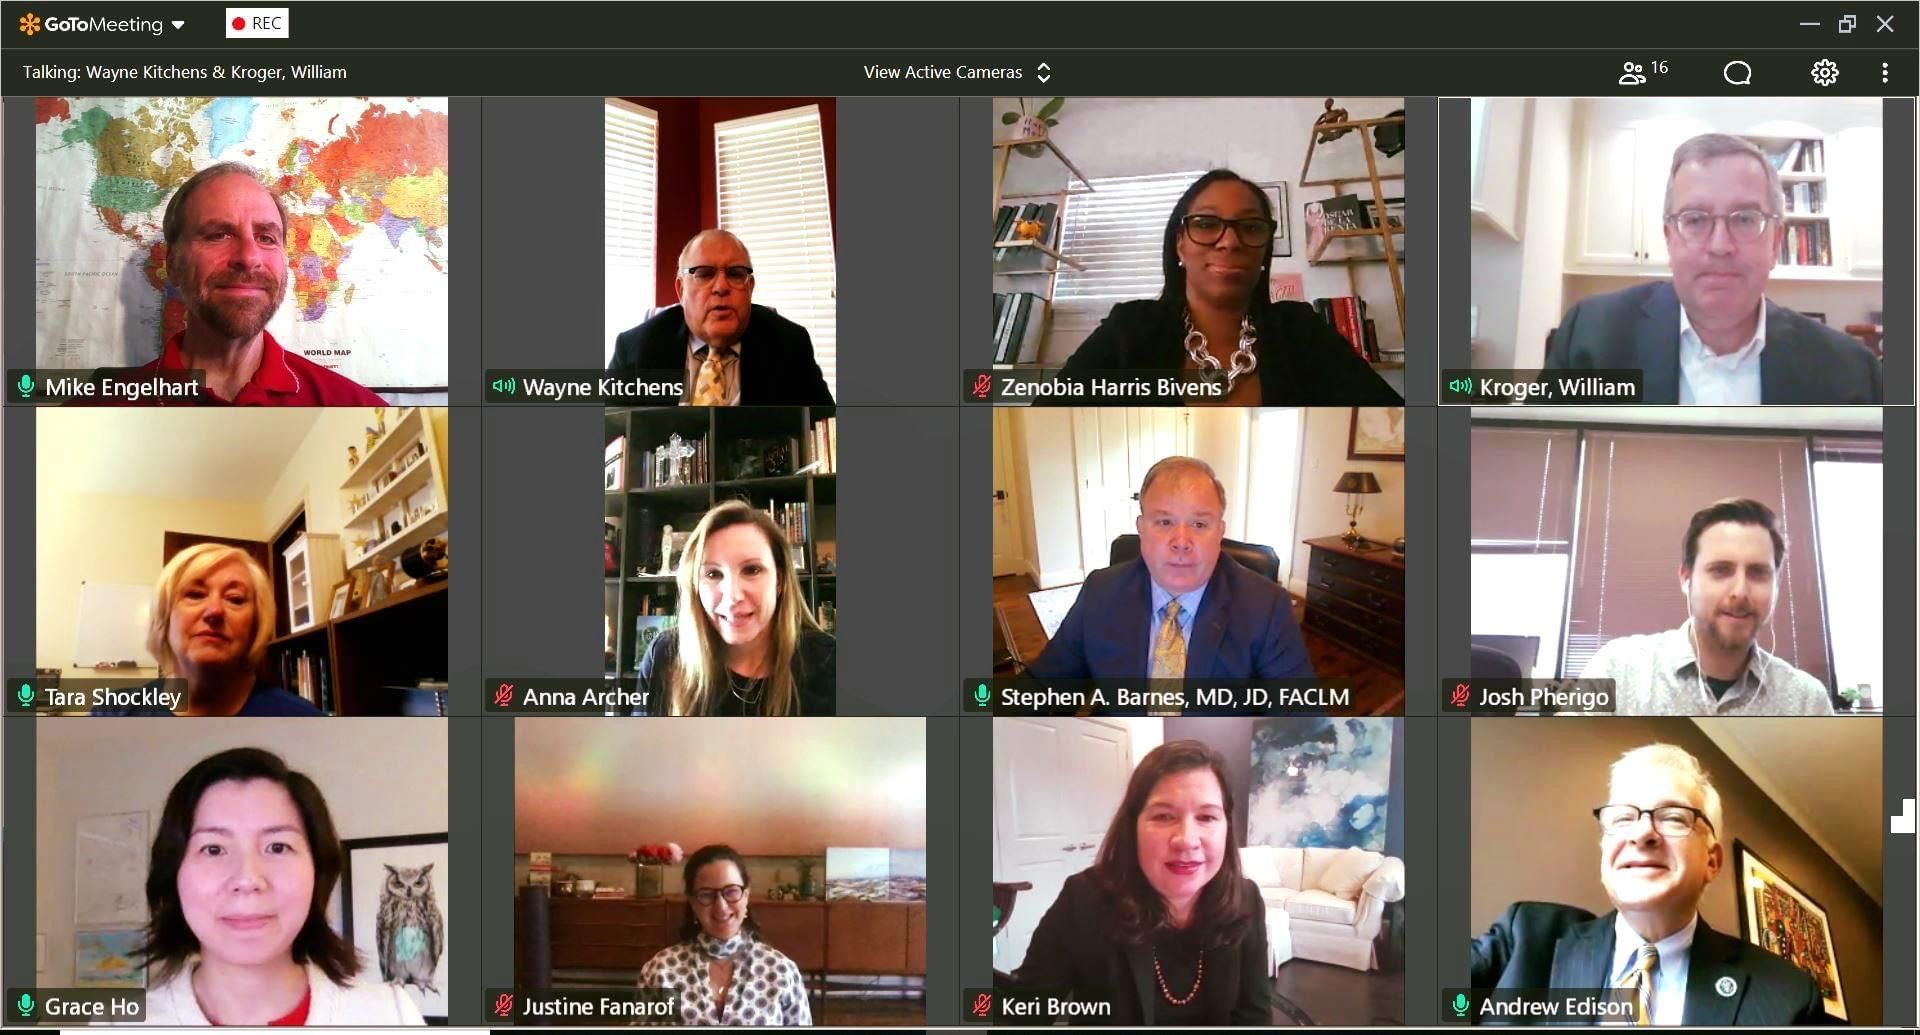 The roundtable discussion participants on GoToMeeting